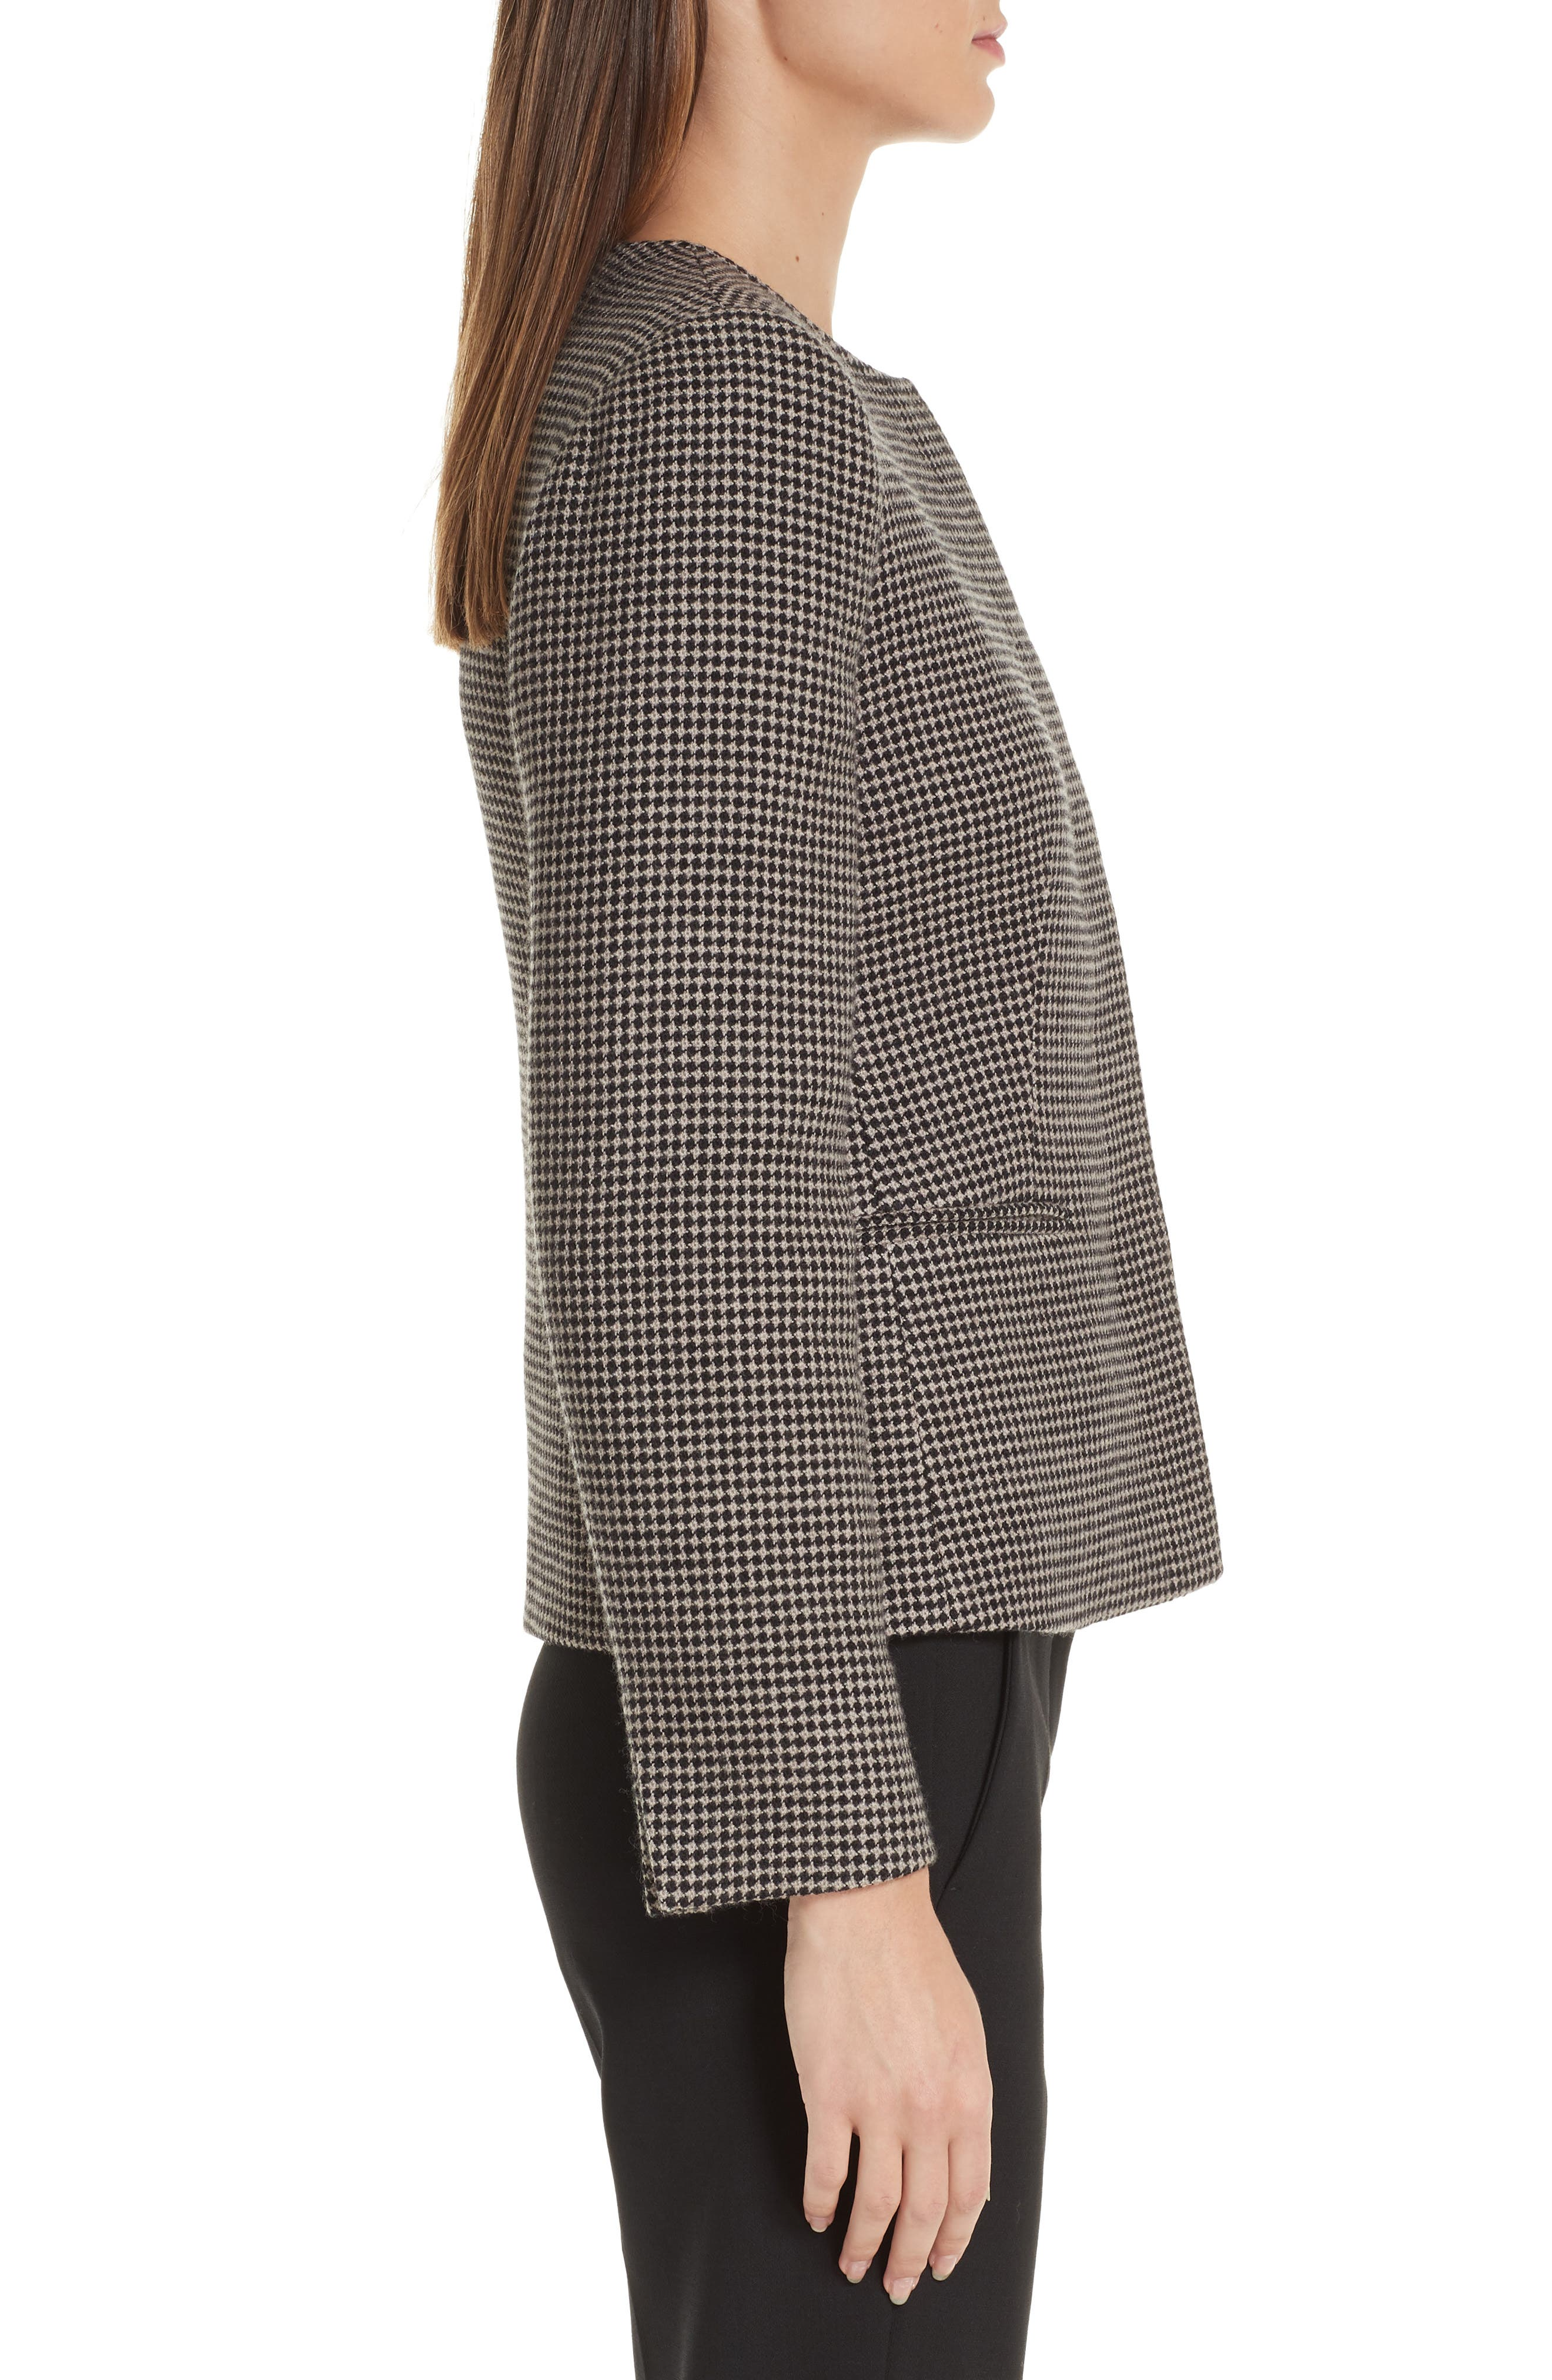 Spigola Wool & Cashmere Jacket,                             Alternate thumbnail 3, color,                             TURTLEDOVE